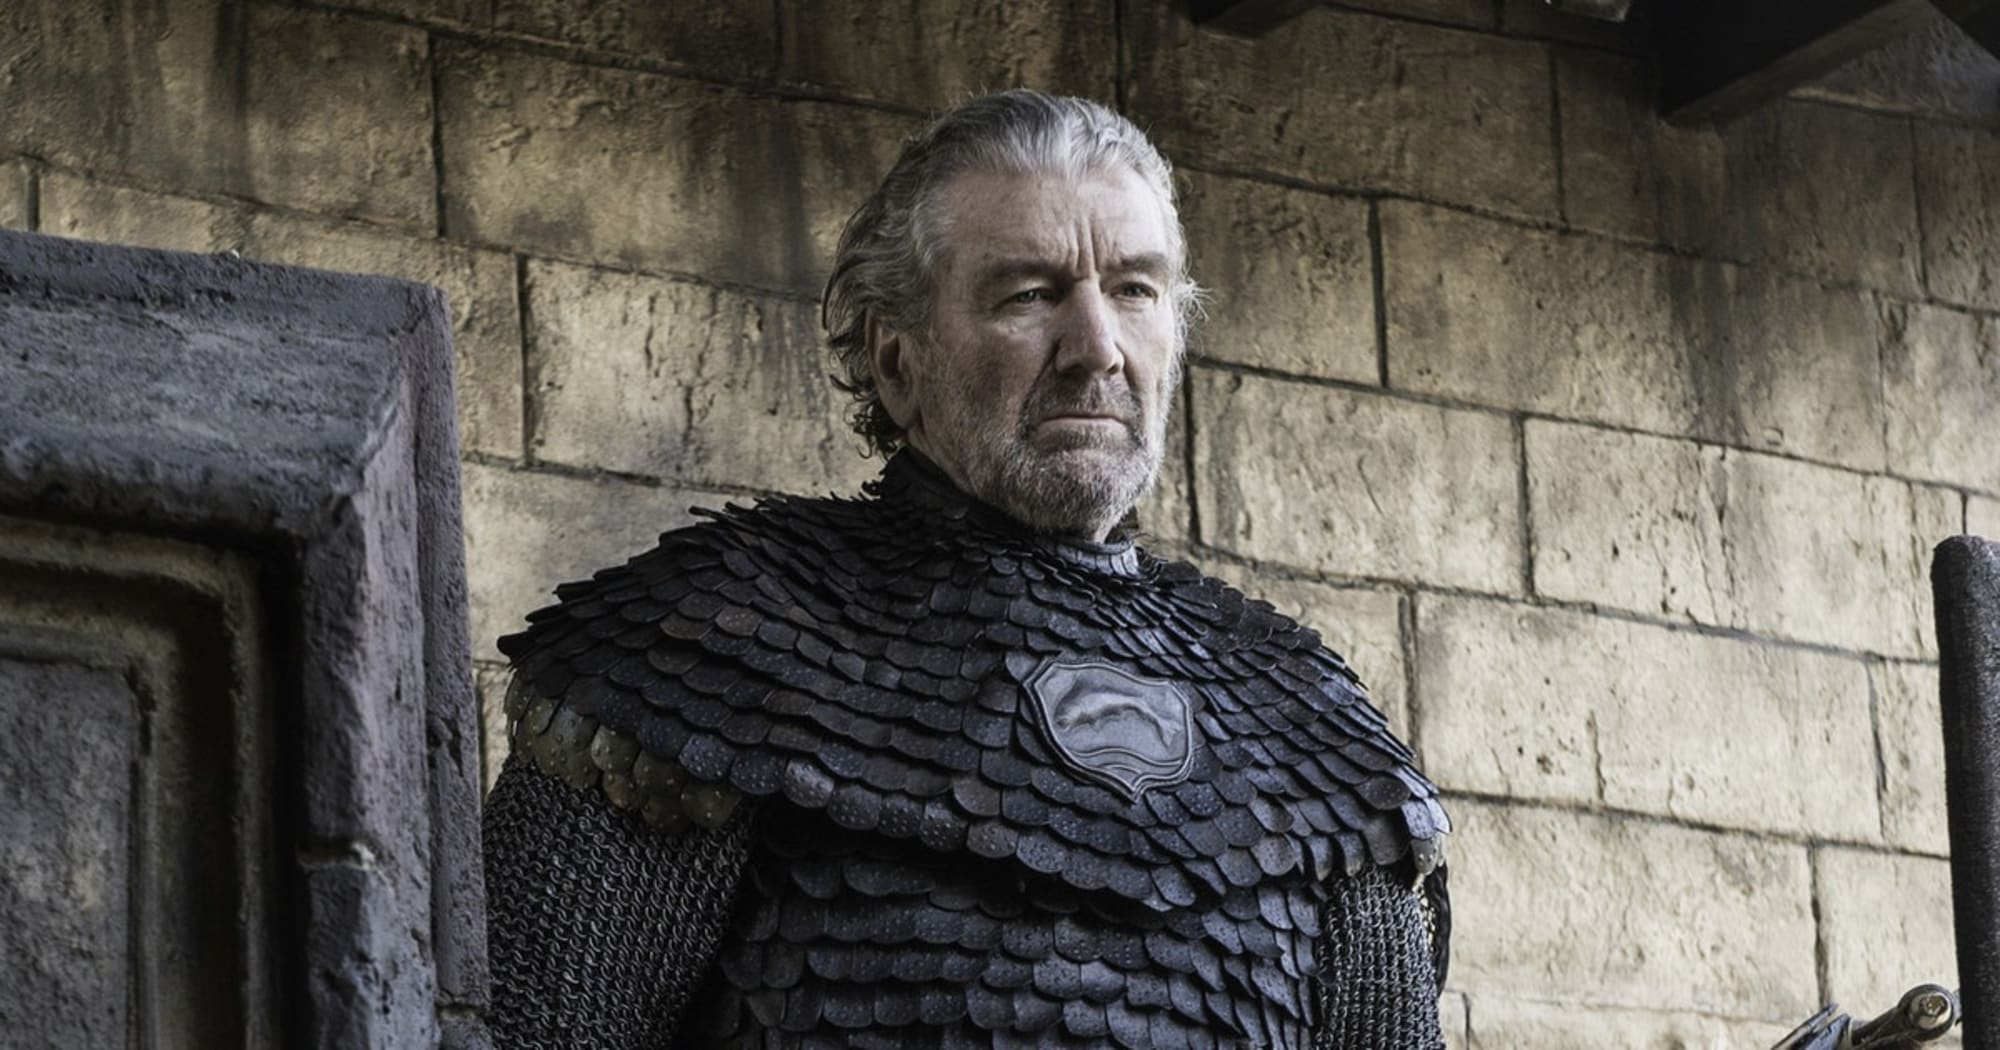 Tony Woodhead joins House of the Dragon as a Mallister knight